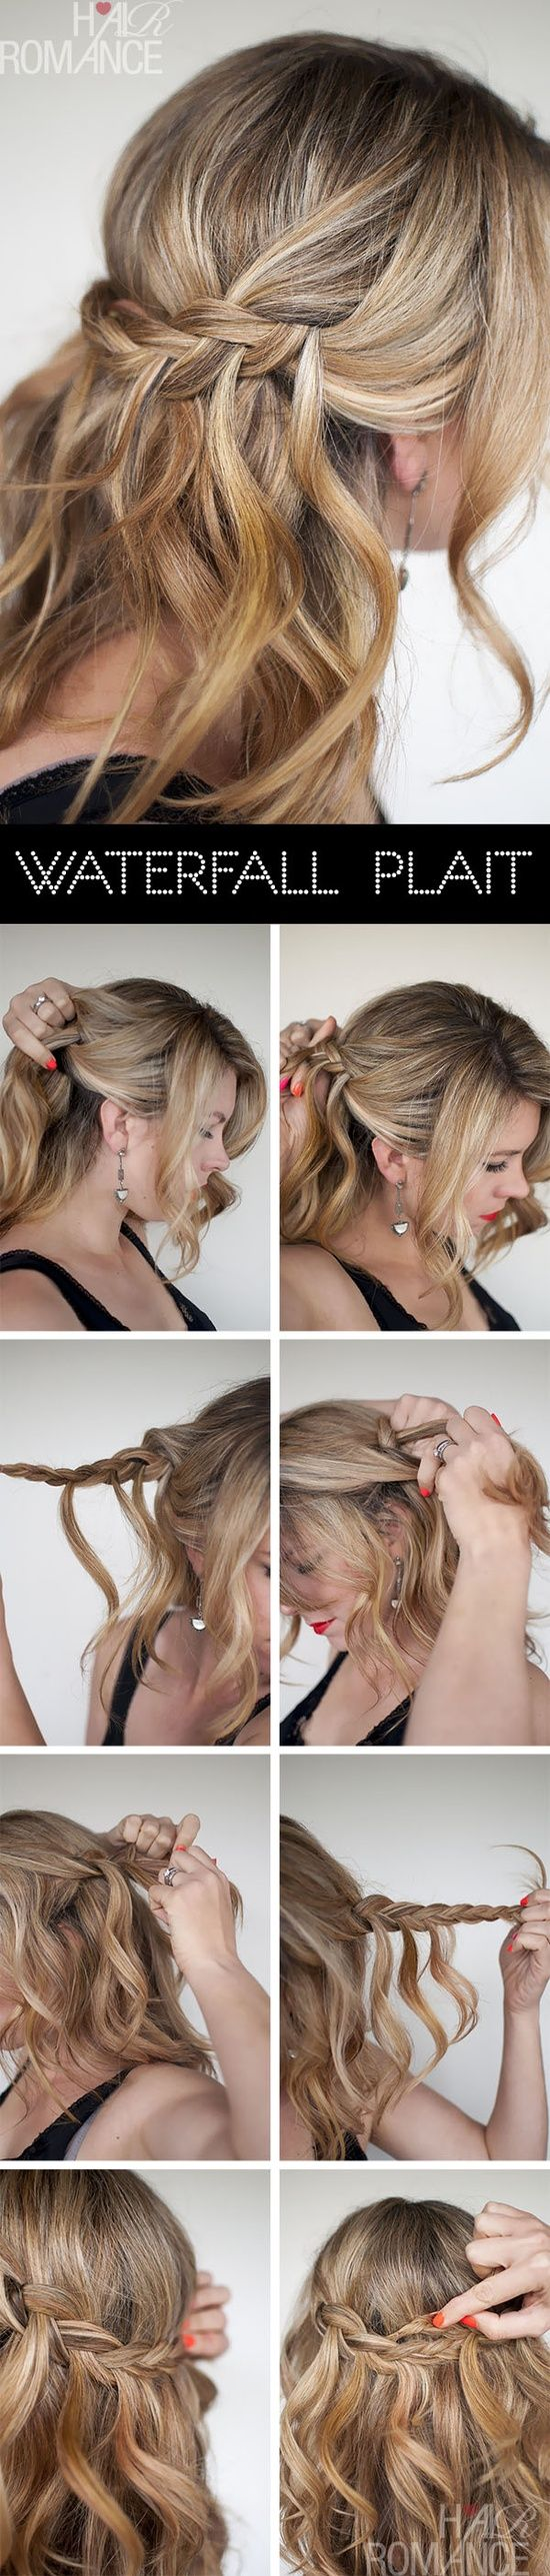 Waterfall Plait!! Can't wait to try out!!